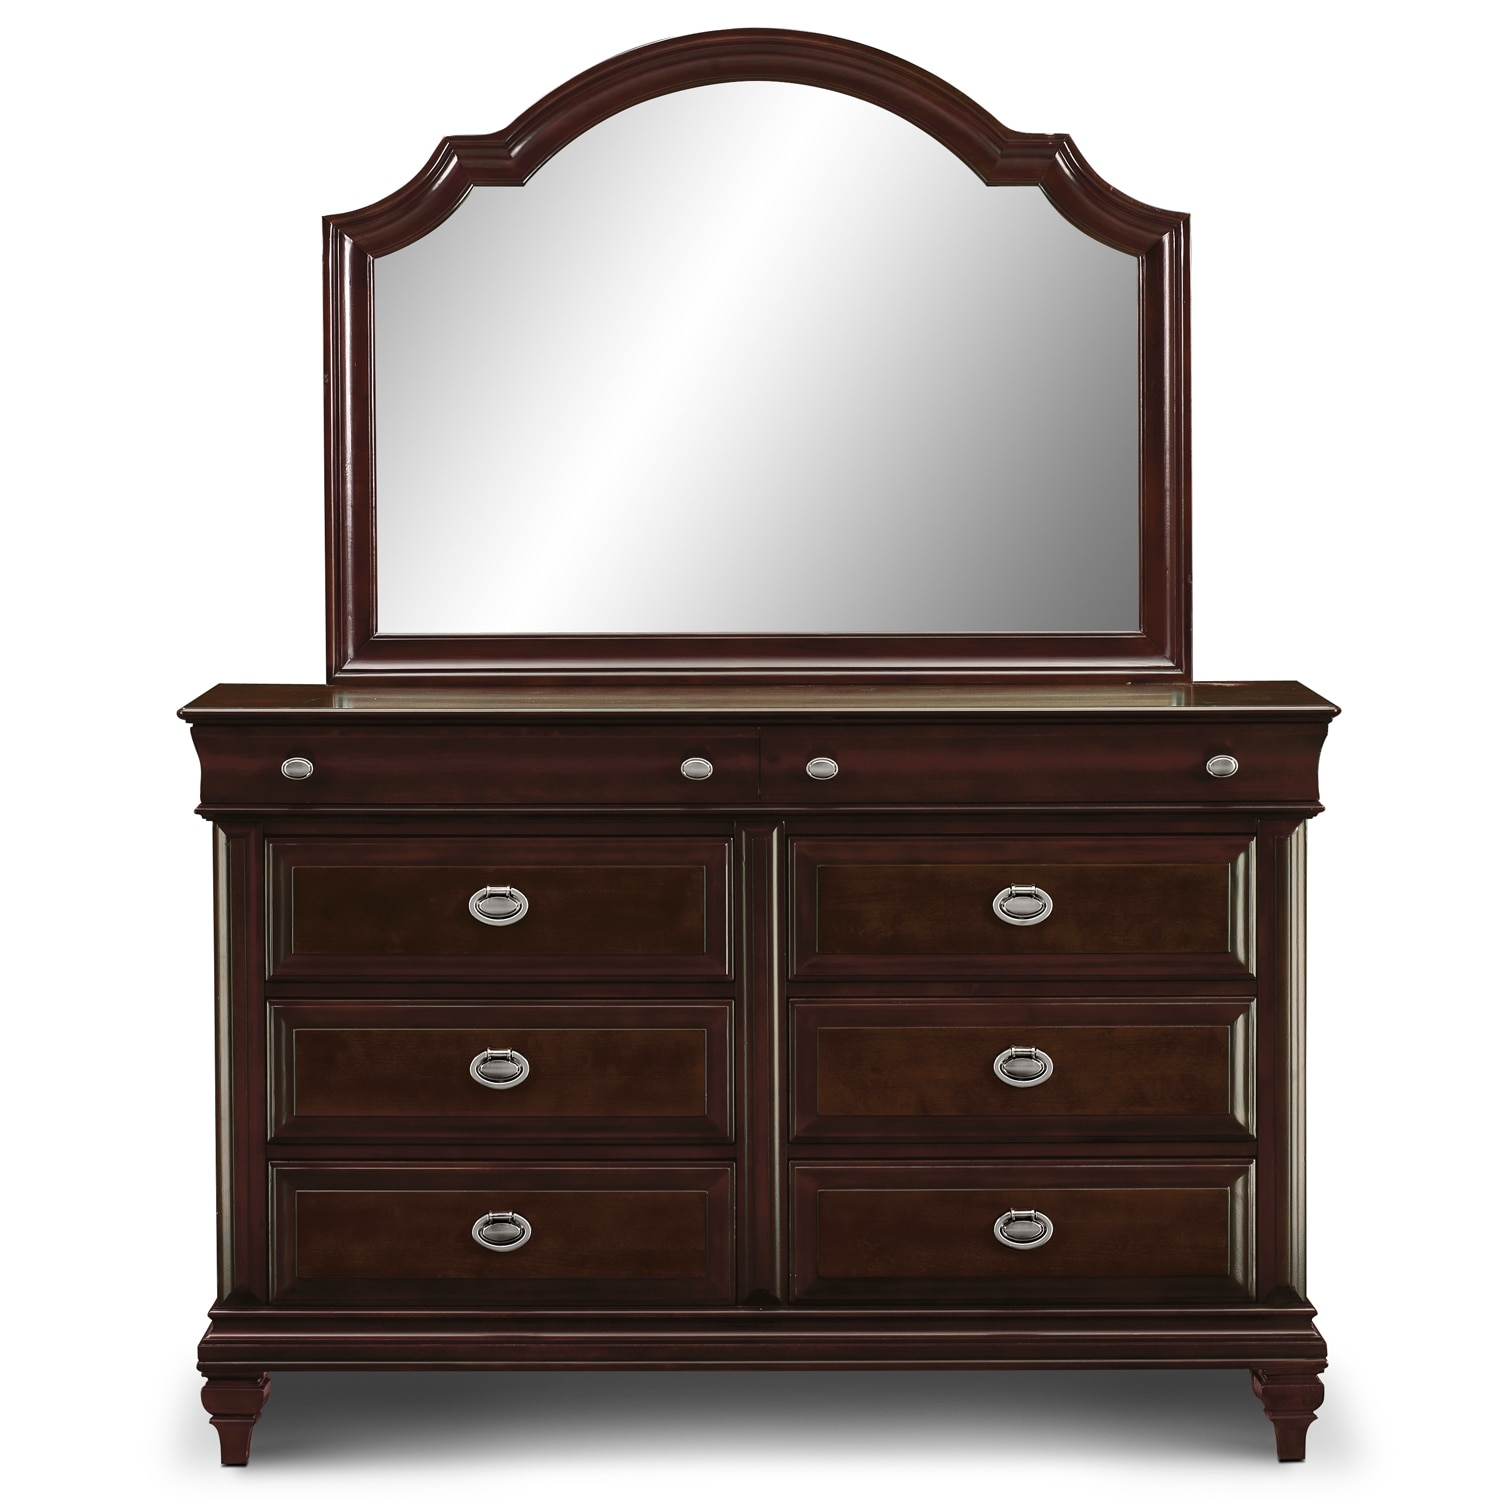 value city furniture dressers manhattan dresser and mirror cherry value city furniture 17690